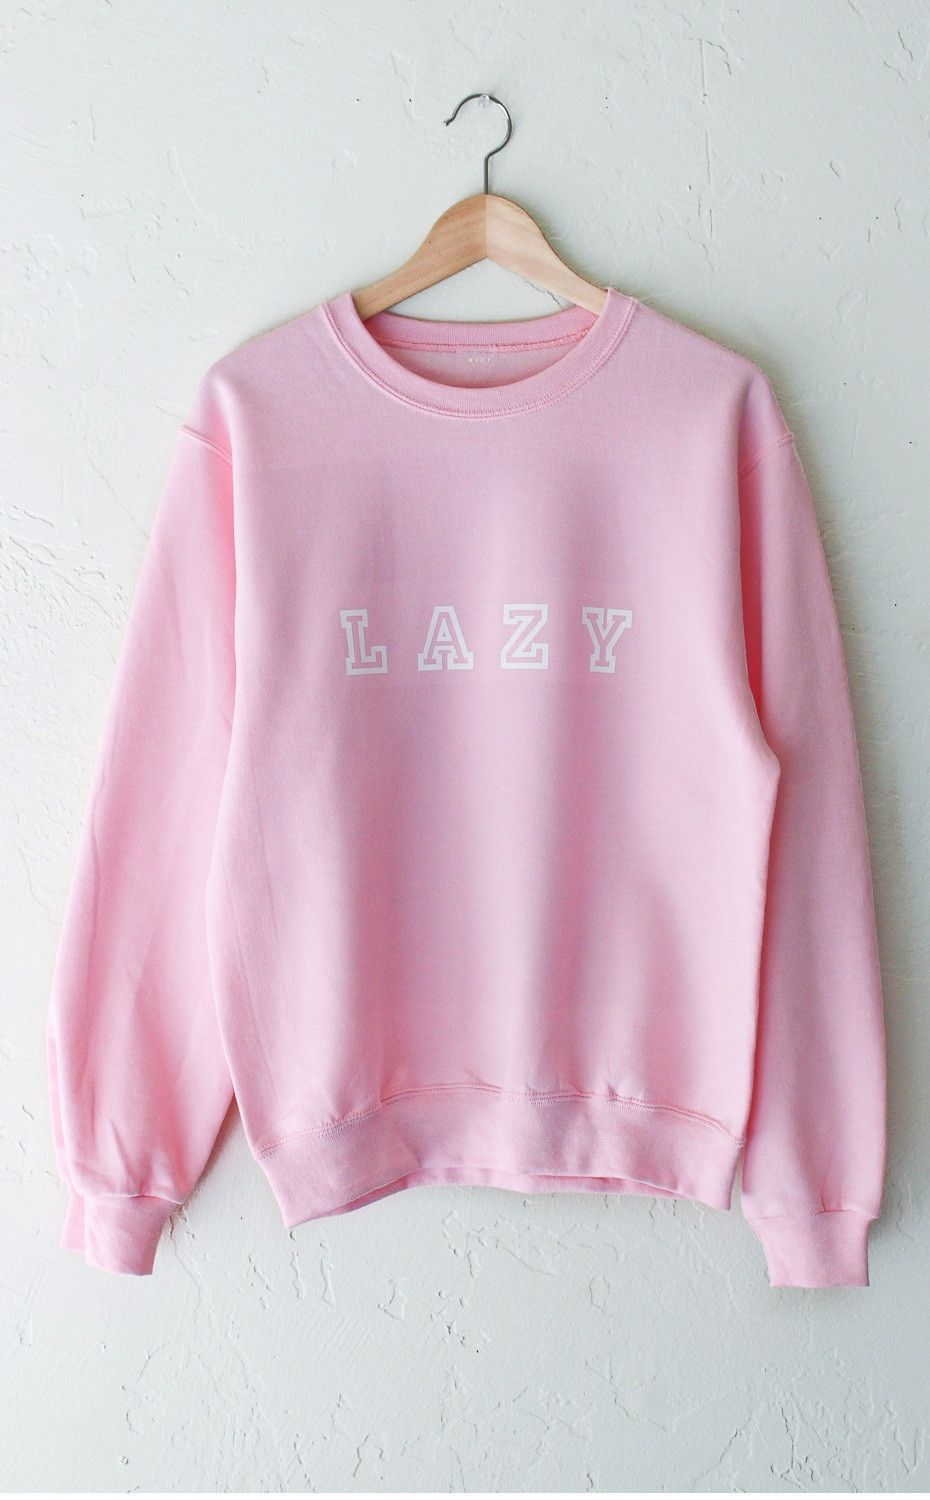 Lazy Oversized Sweatshirt - Pink | Lazy, Cozy and Pink brand